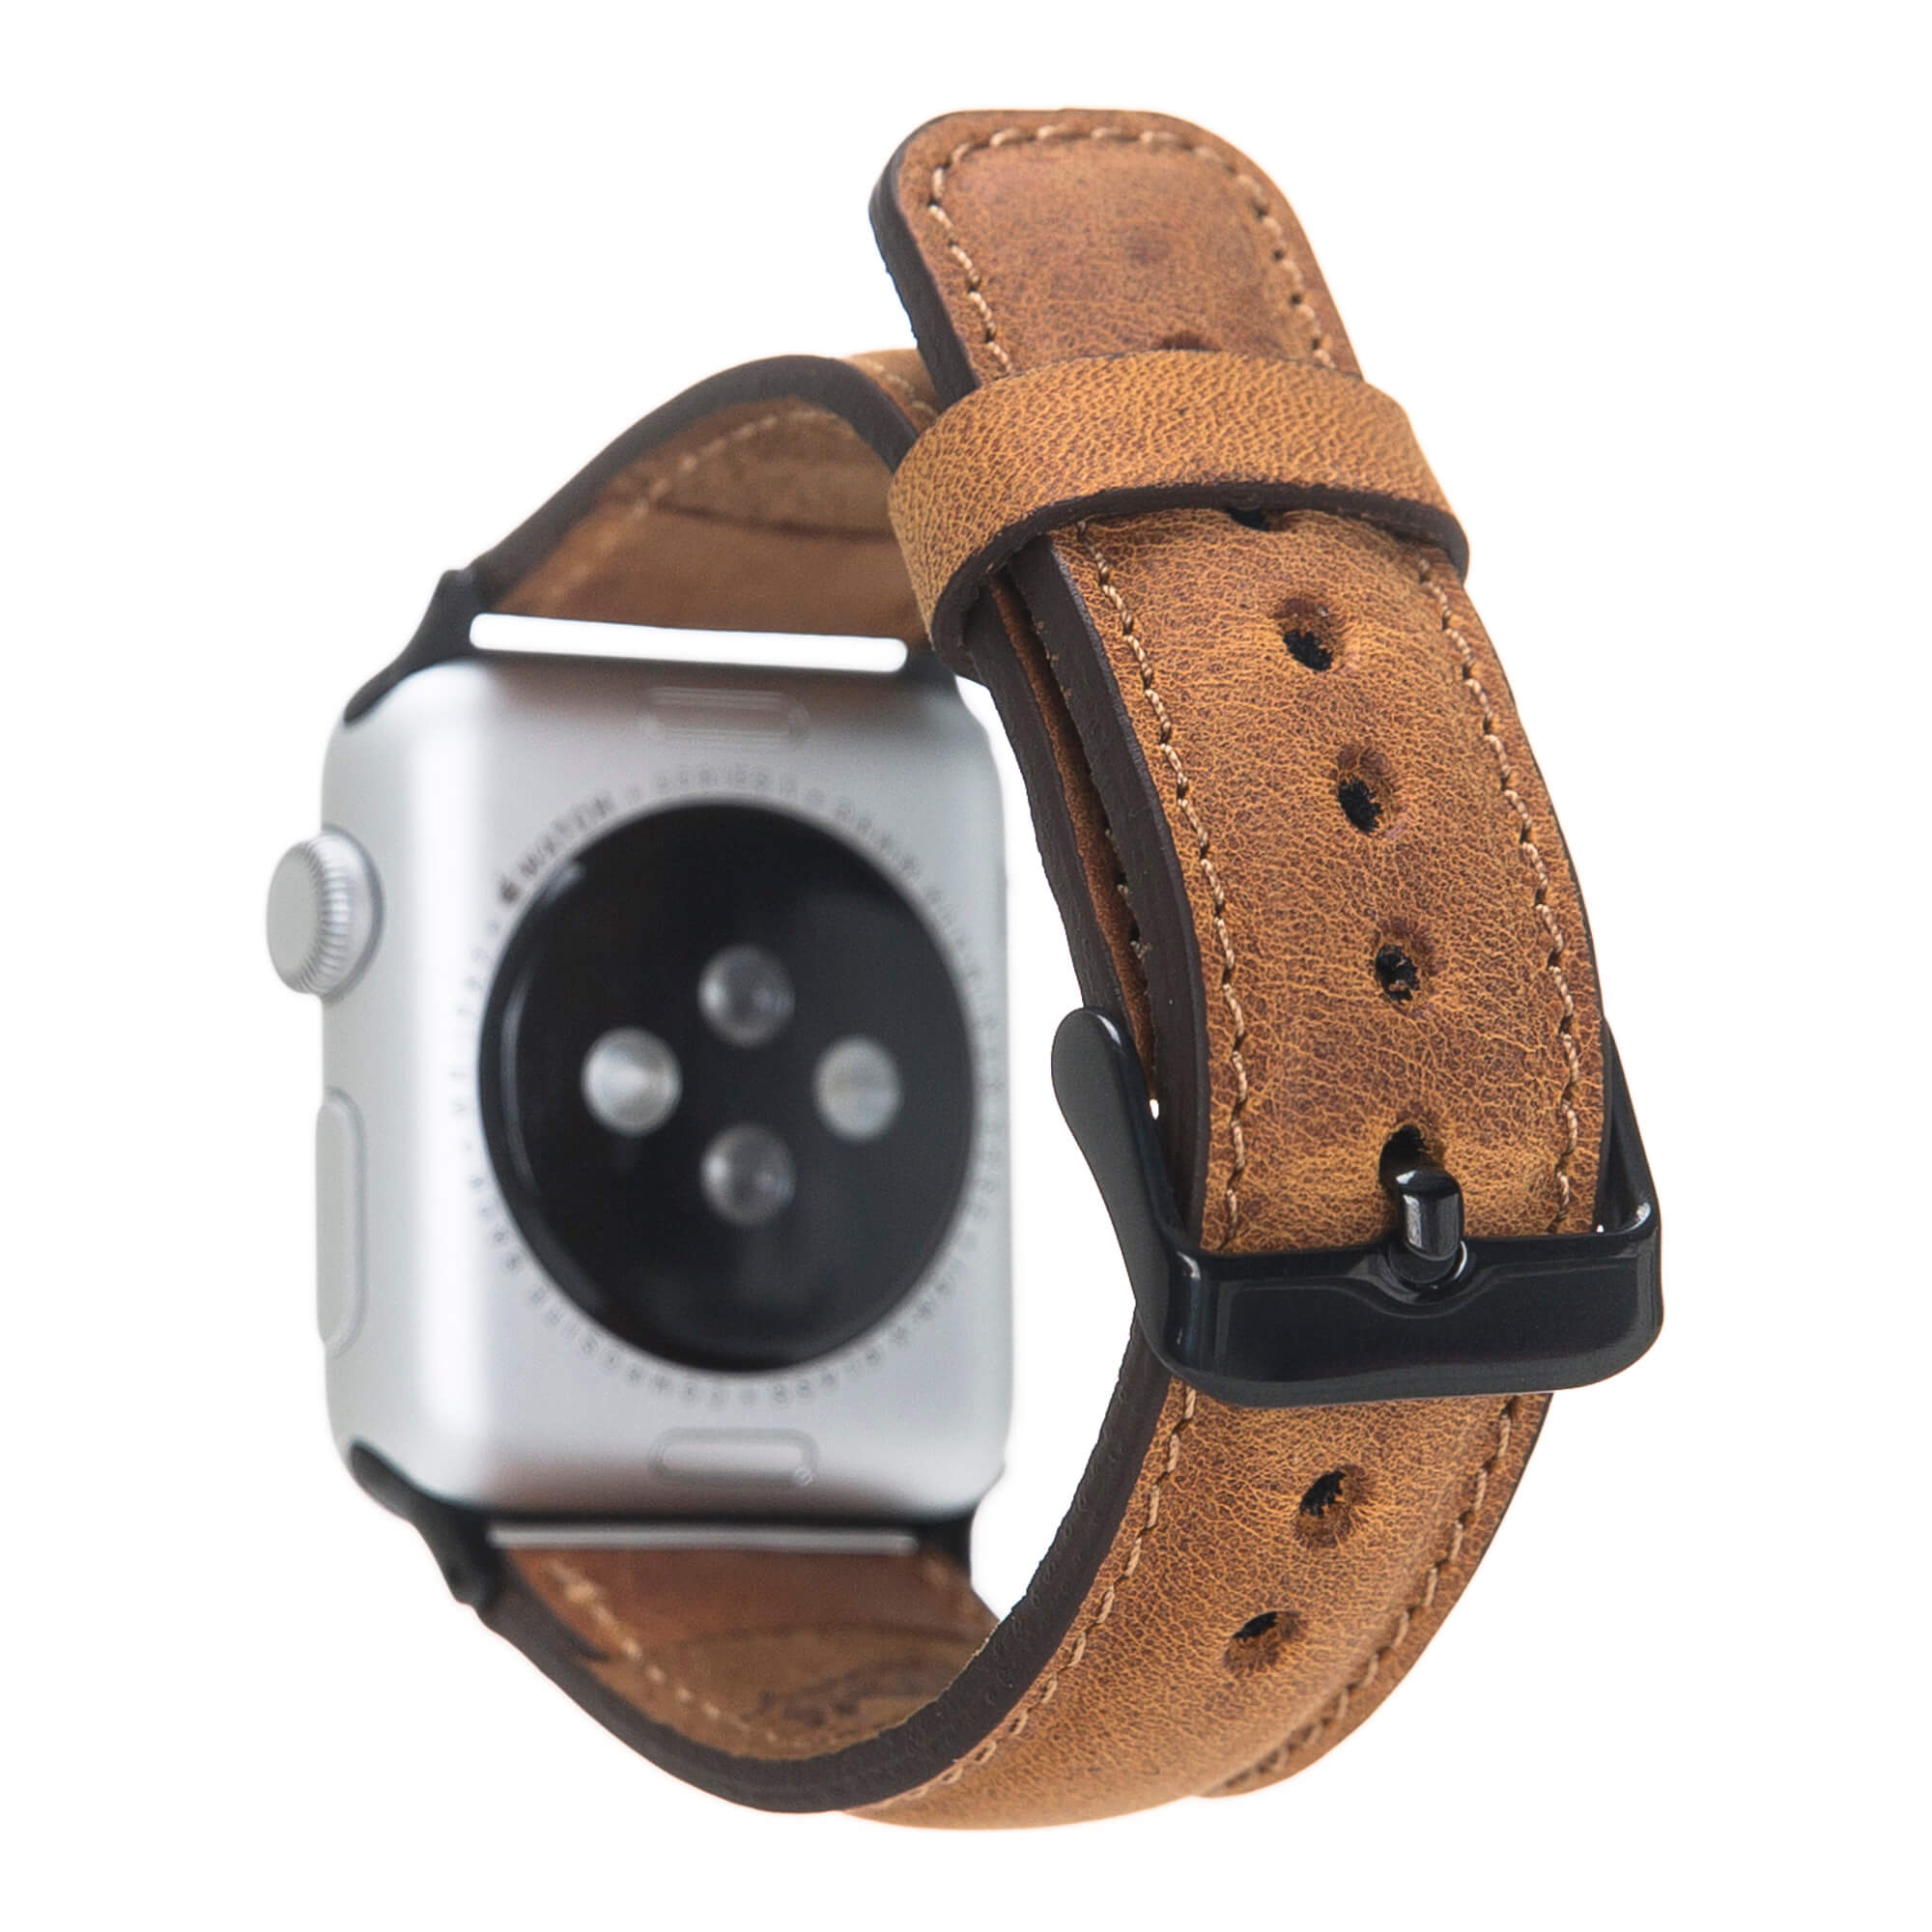 Lederarmband für das Apple Watch Series 1-4 I Camel Braun 42mm/44mm mit Space Grau Connectoren